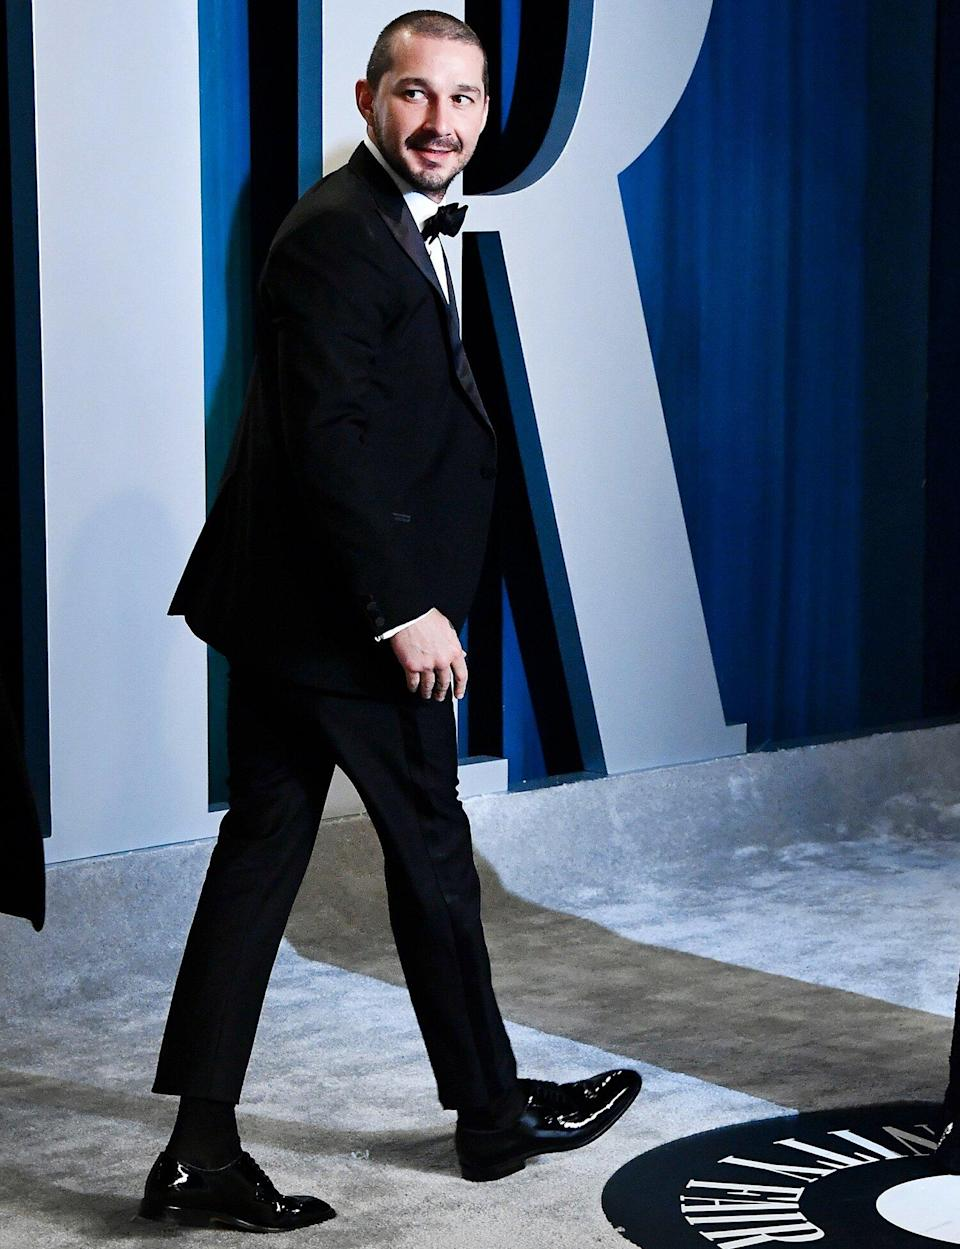 Shia LaBeouf attends the 2020 Vanity Fair Oscar Party hosted by Radhika Jones at Wallis Annenberg Center for the Performing Arts on February 09, 2020 in Beverly Hills, California.